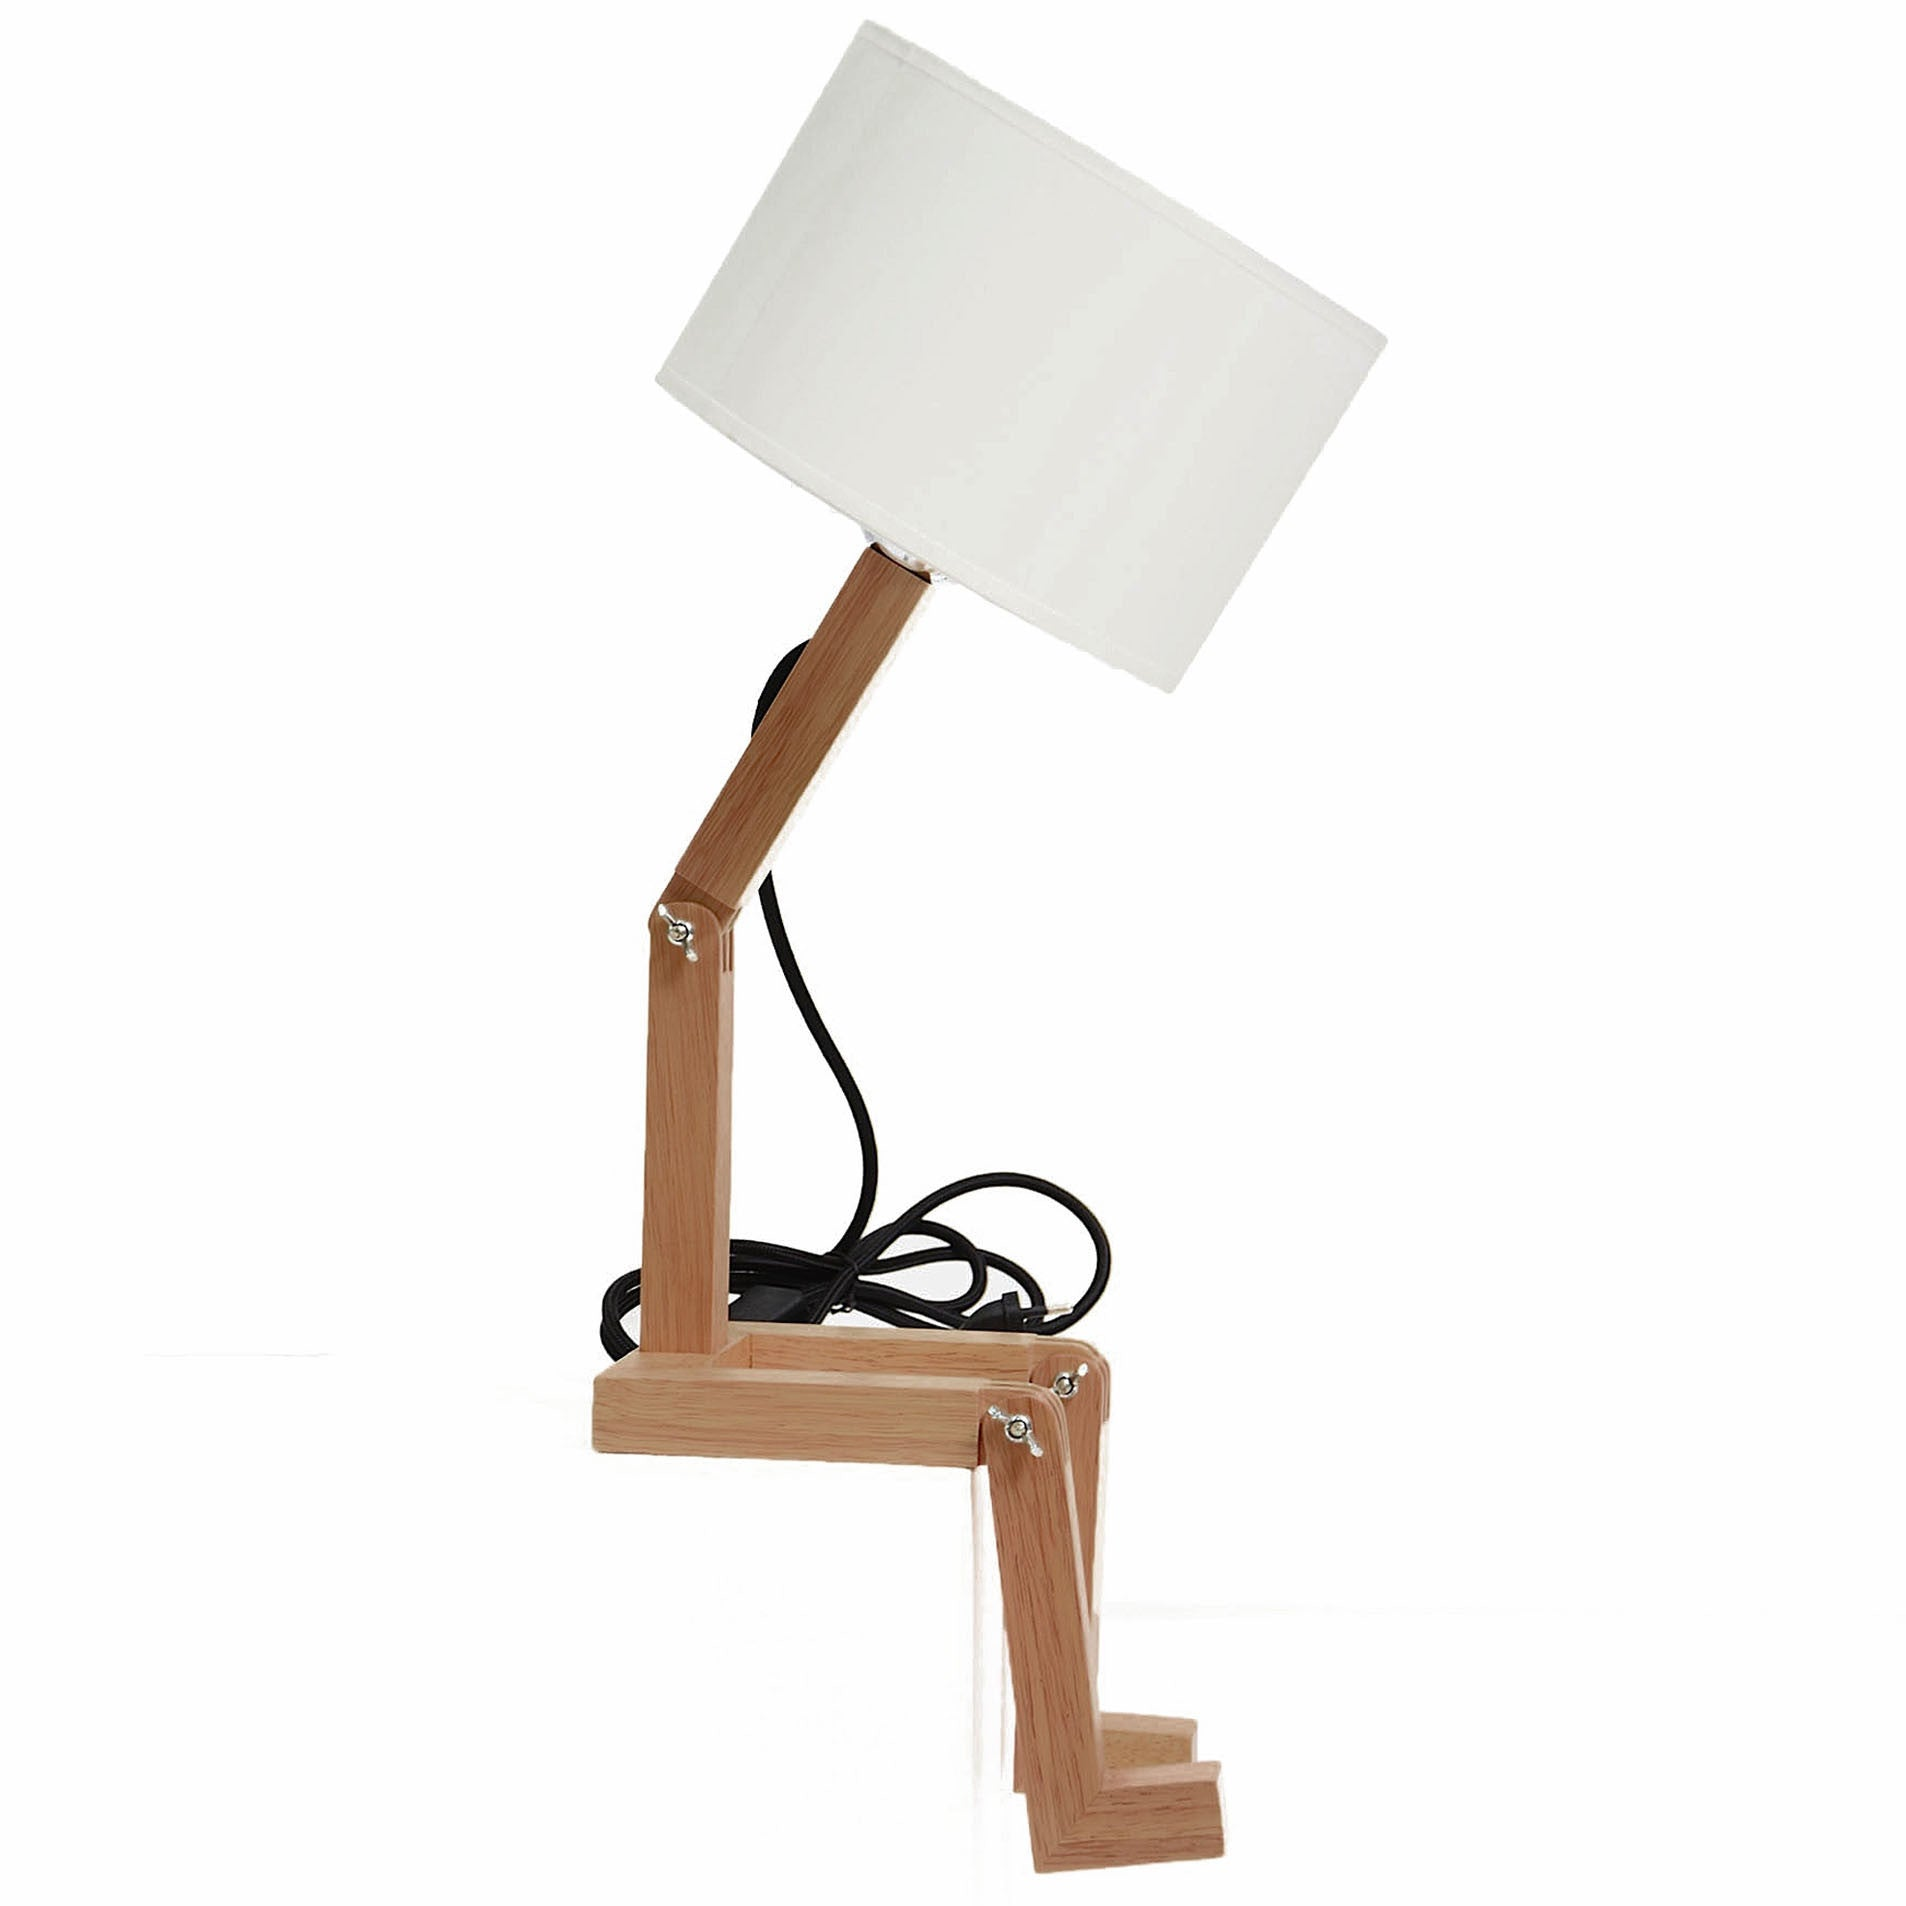 Desk\table Lamp - Mr.Lonley  Solid Wood Table Lamp BPMT01-W